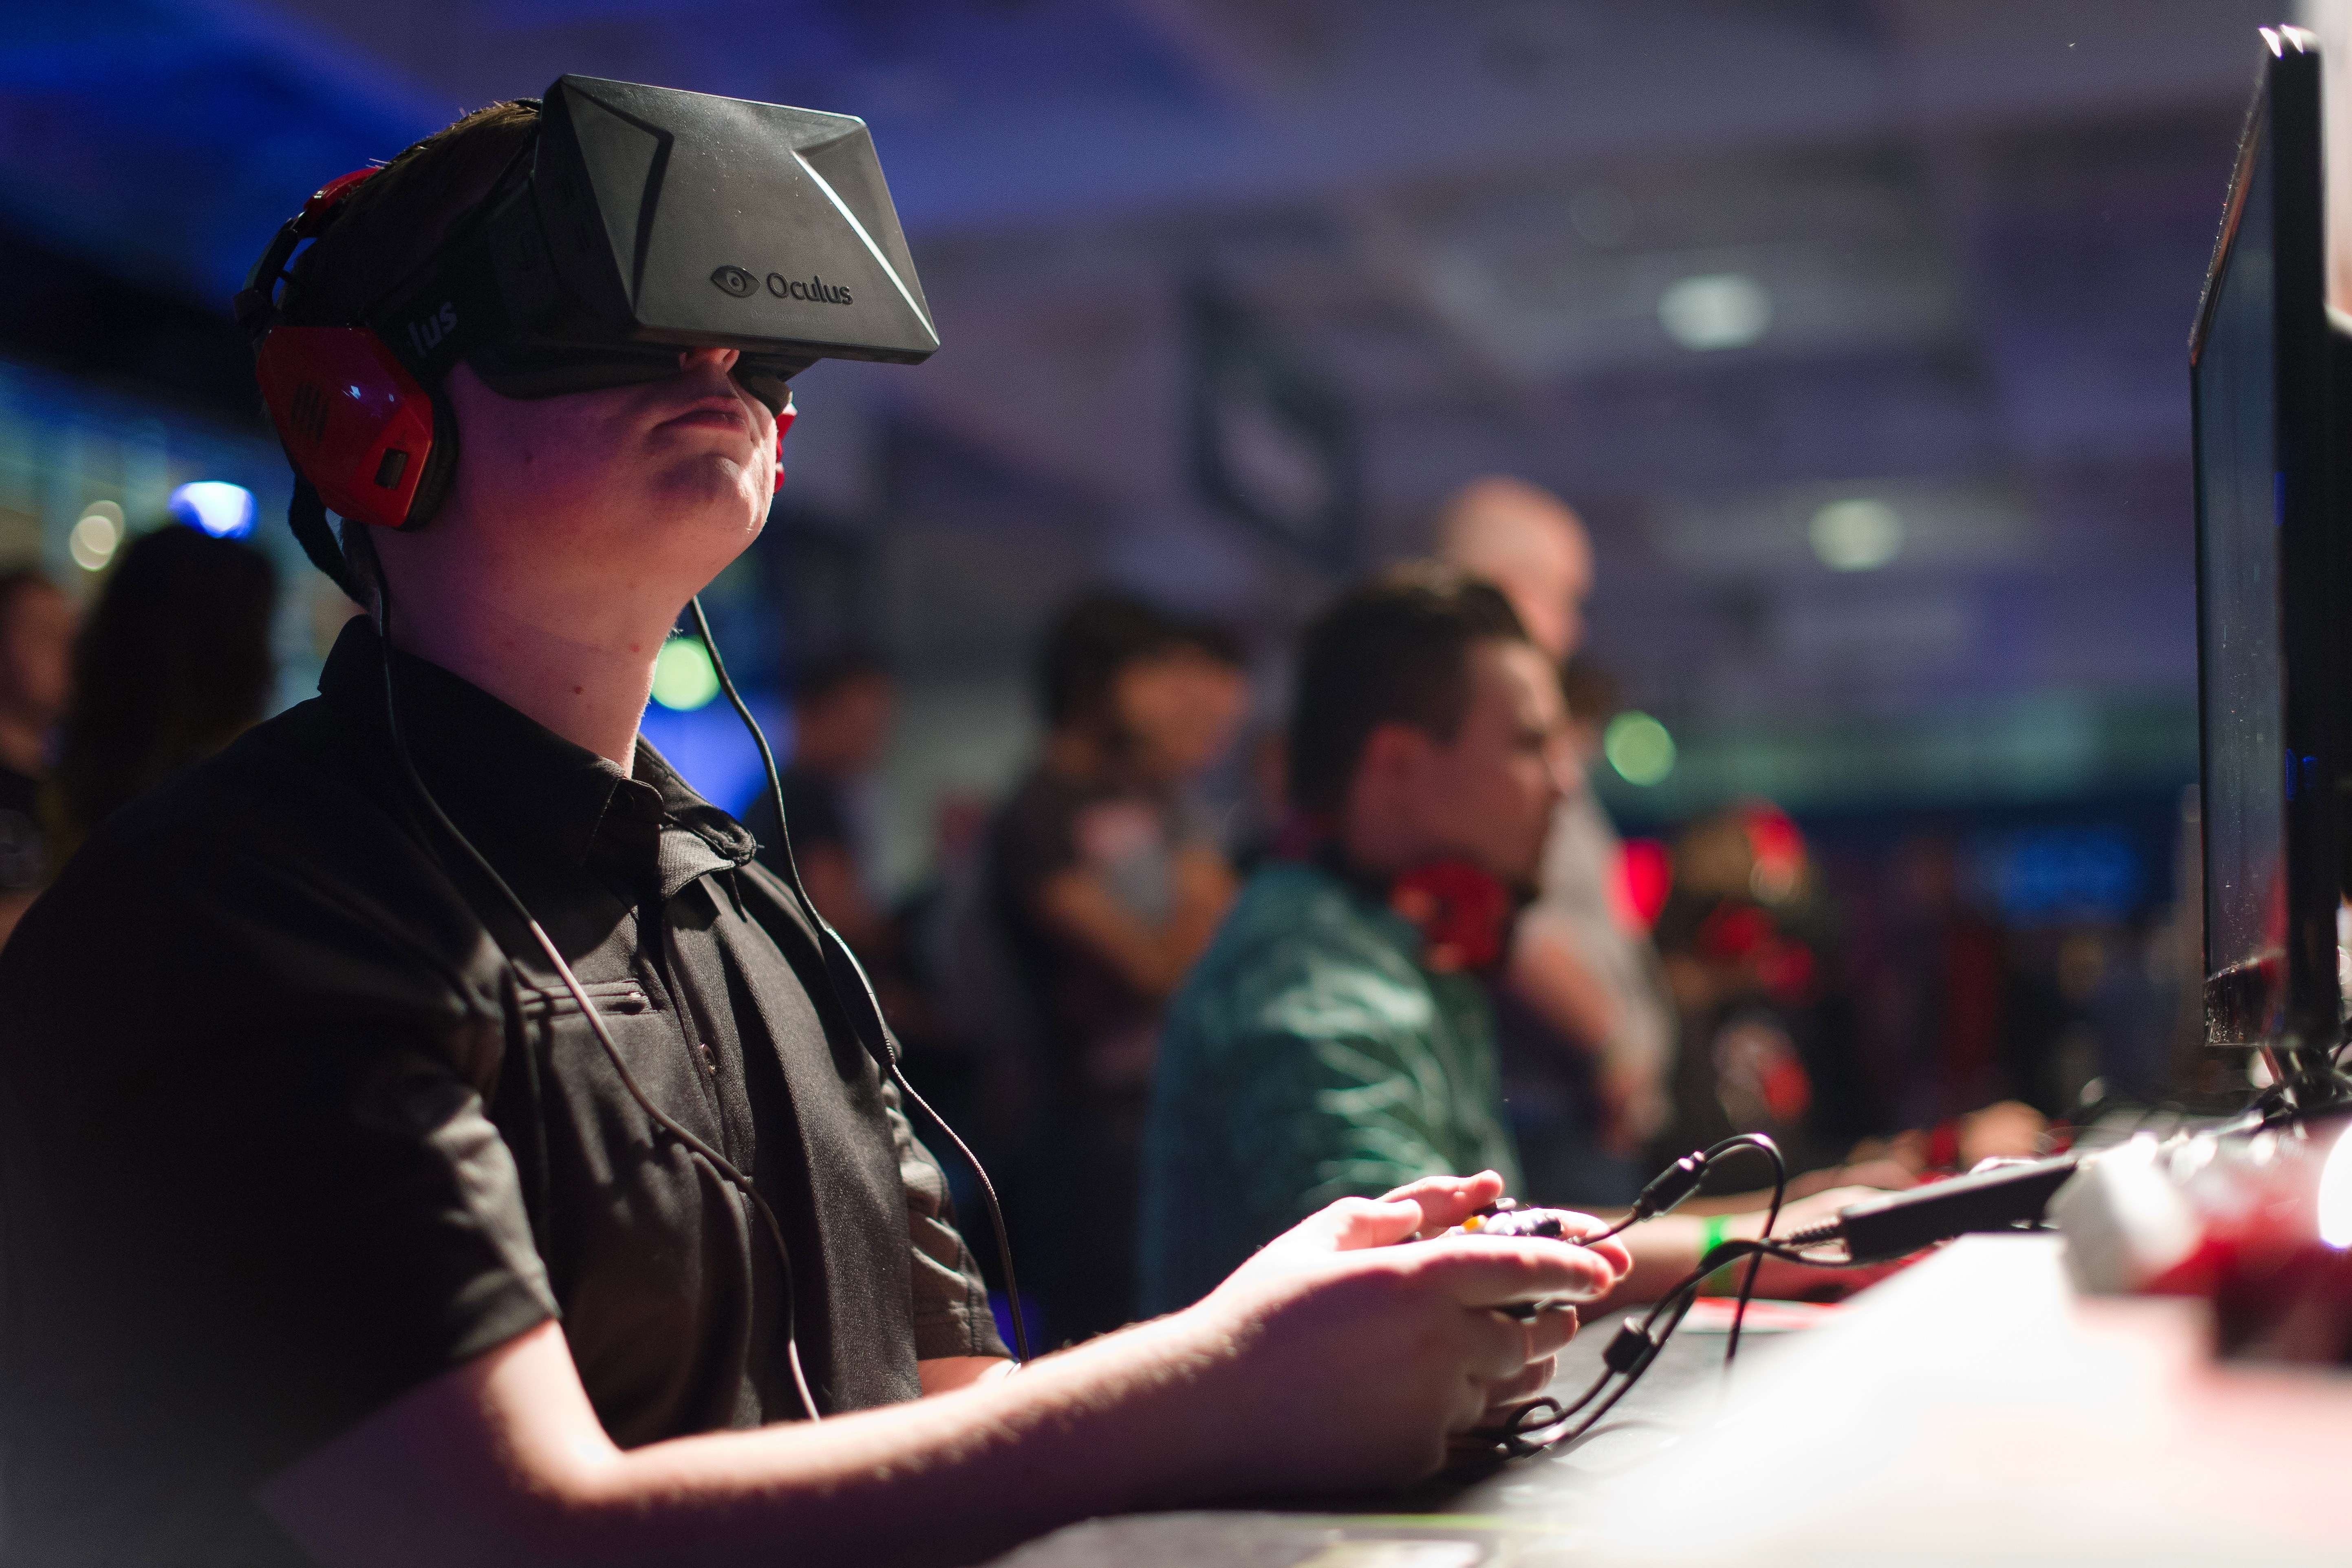 A gamer uses an Oculus virtual reality headset at the Eurogamer Expo 2013 in London, September 26, 2013.